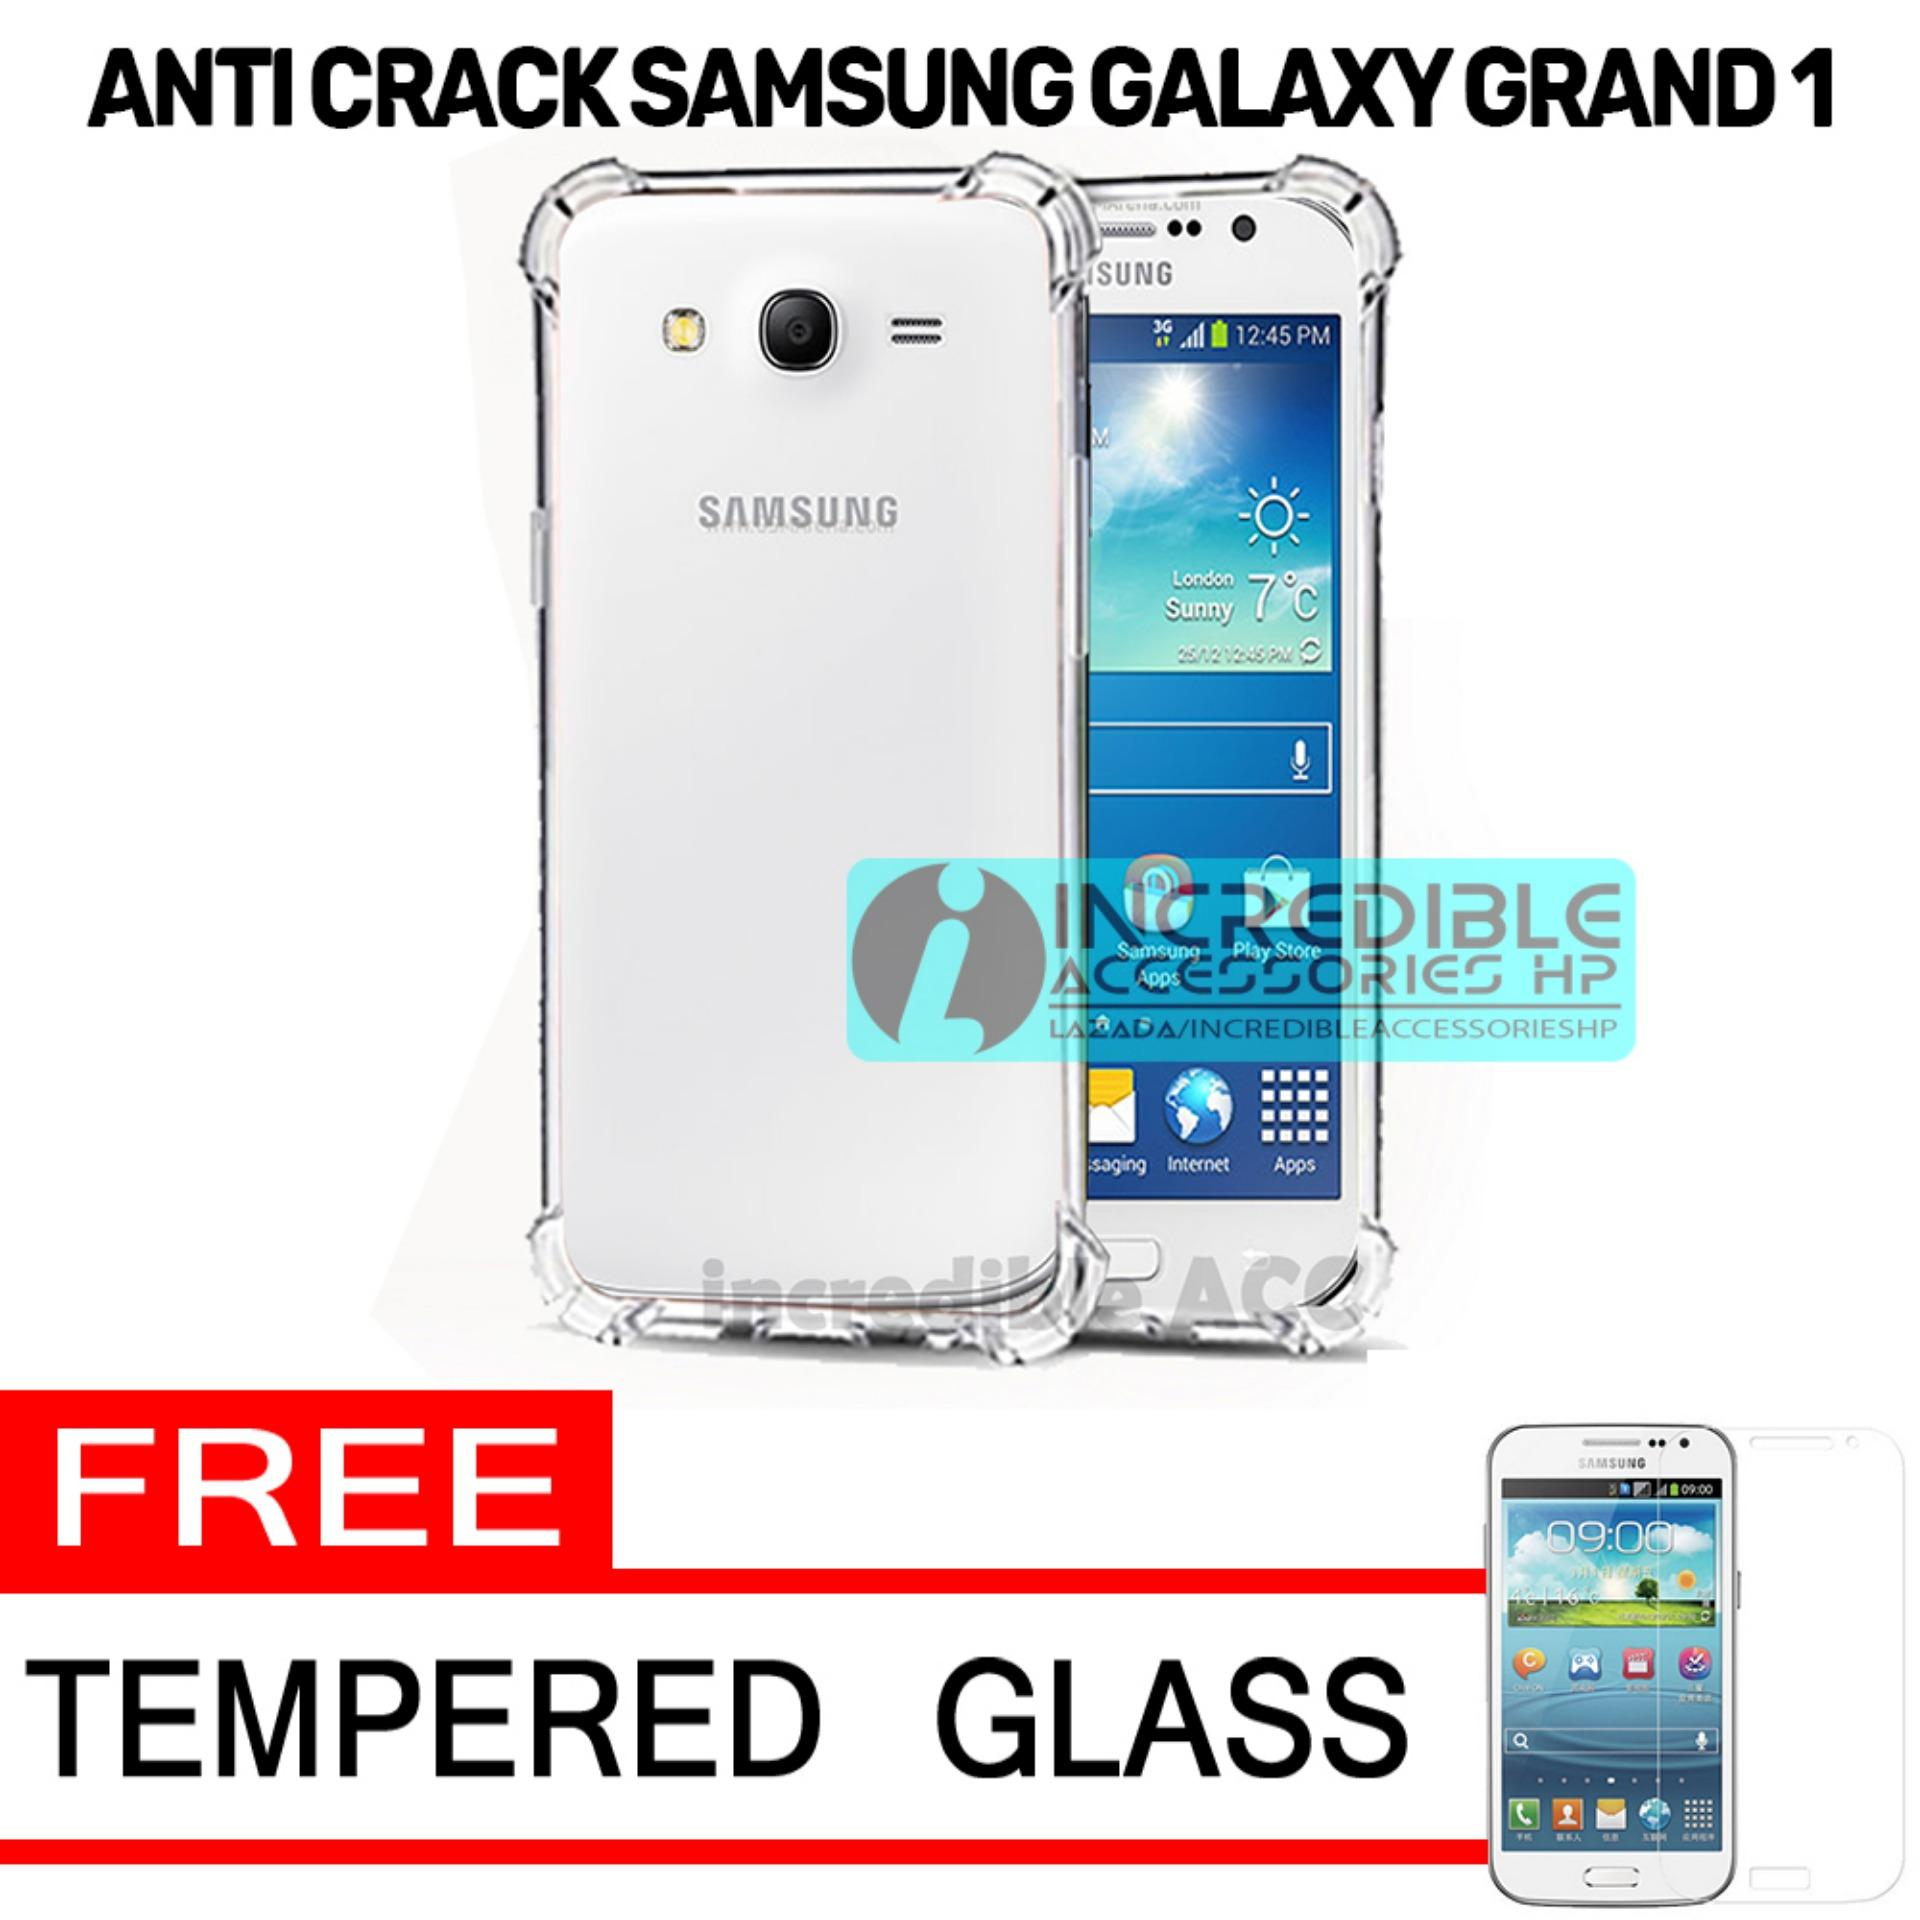 Softcase Silicon Anti Shock / Anti Crack Elegant Softcase  for Samsung Galaxy Grand 1 (I9082) / Galaxy Grand Neo / Galaxy Grand Duos - White Clear + Free Tempered Glass